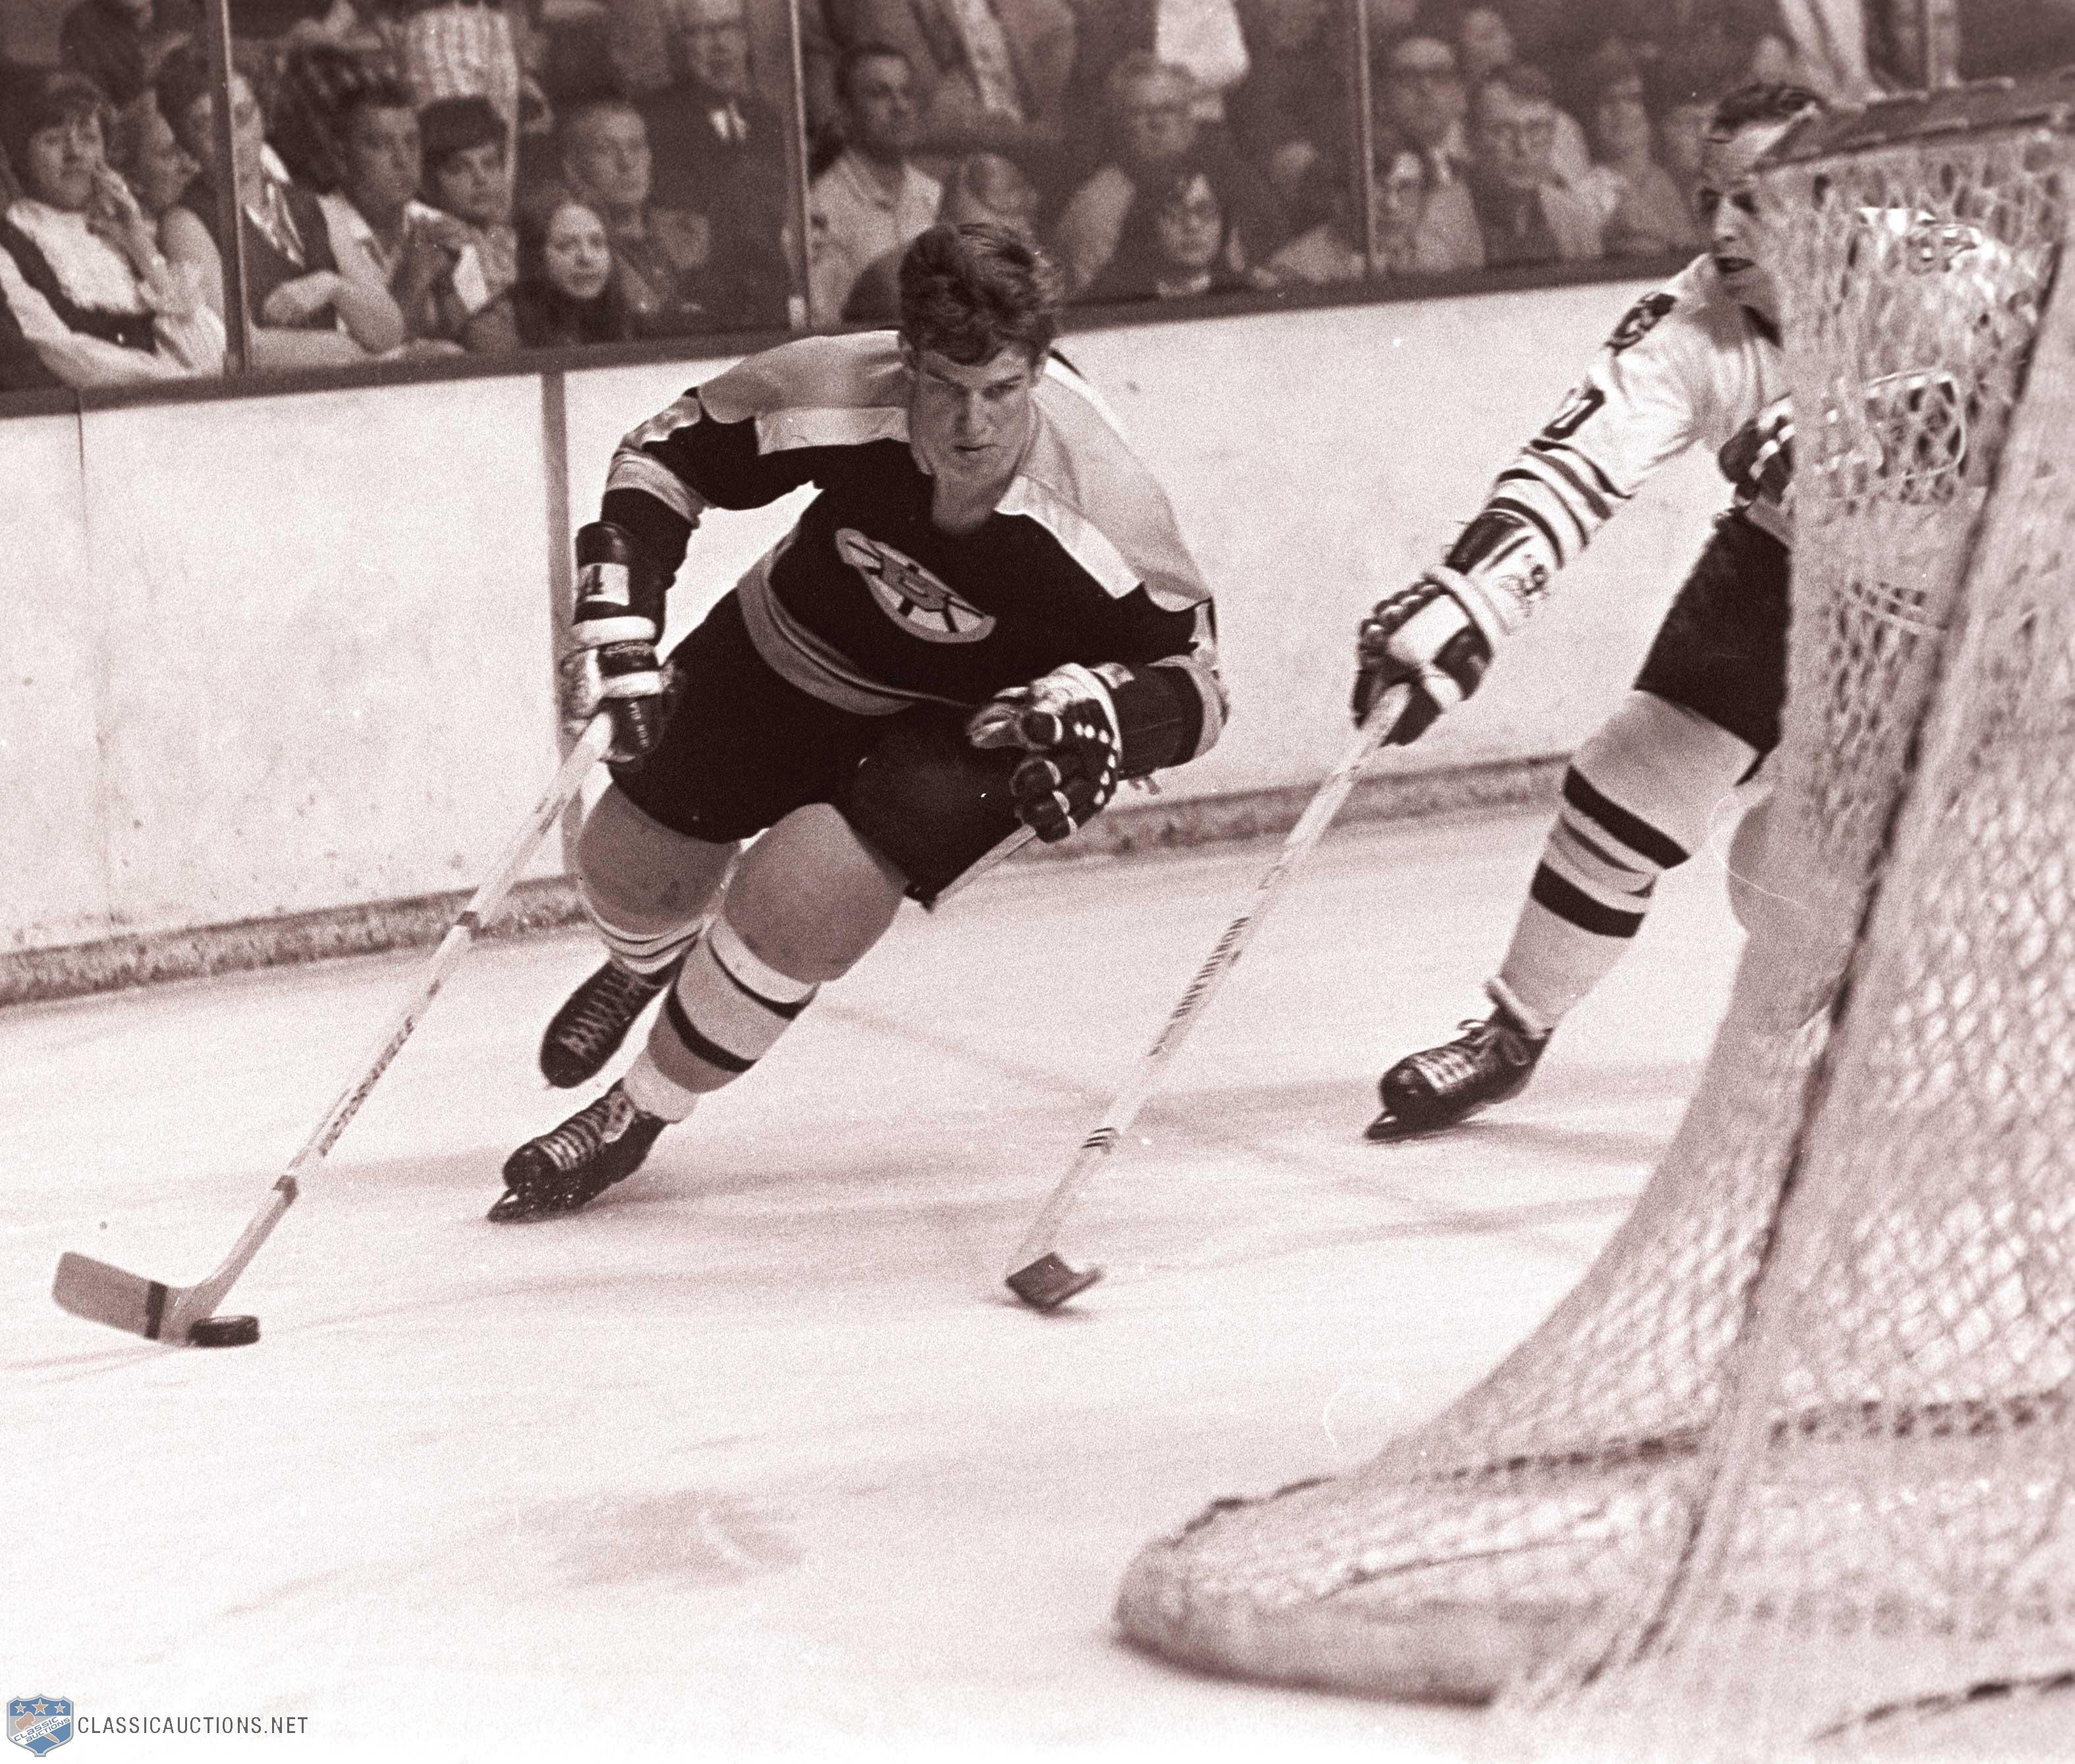 How I Remember His Most Carrying The Puck And Picking Up Speed For An End To End Rush Boston Bruins Hockey Bruins Hockey Bobby Orr